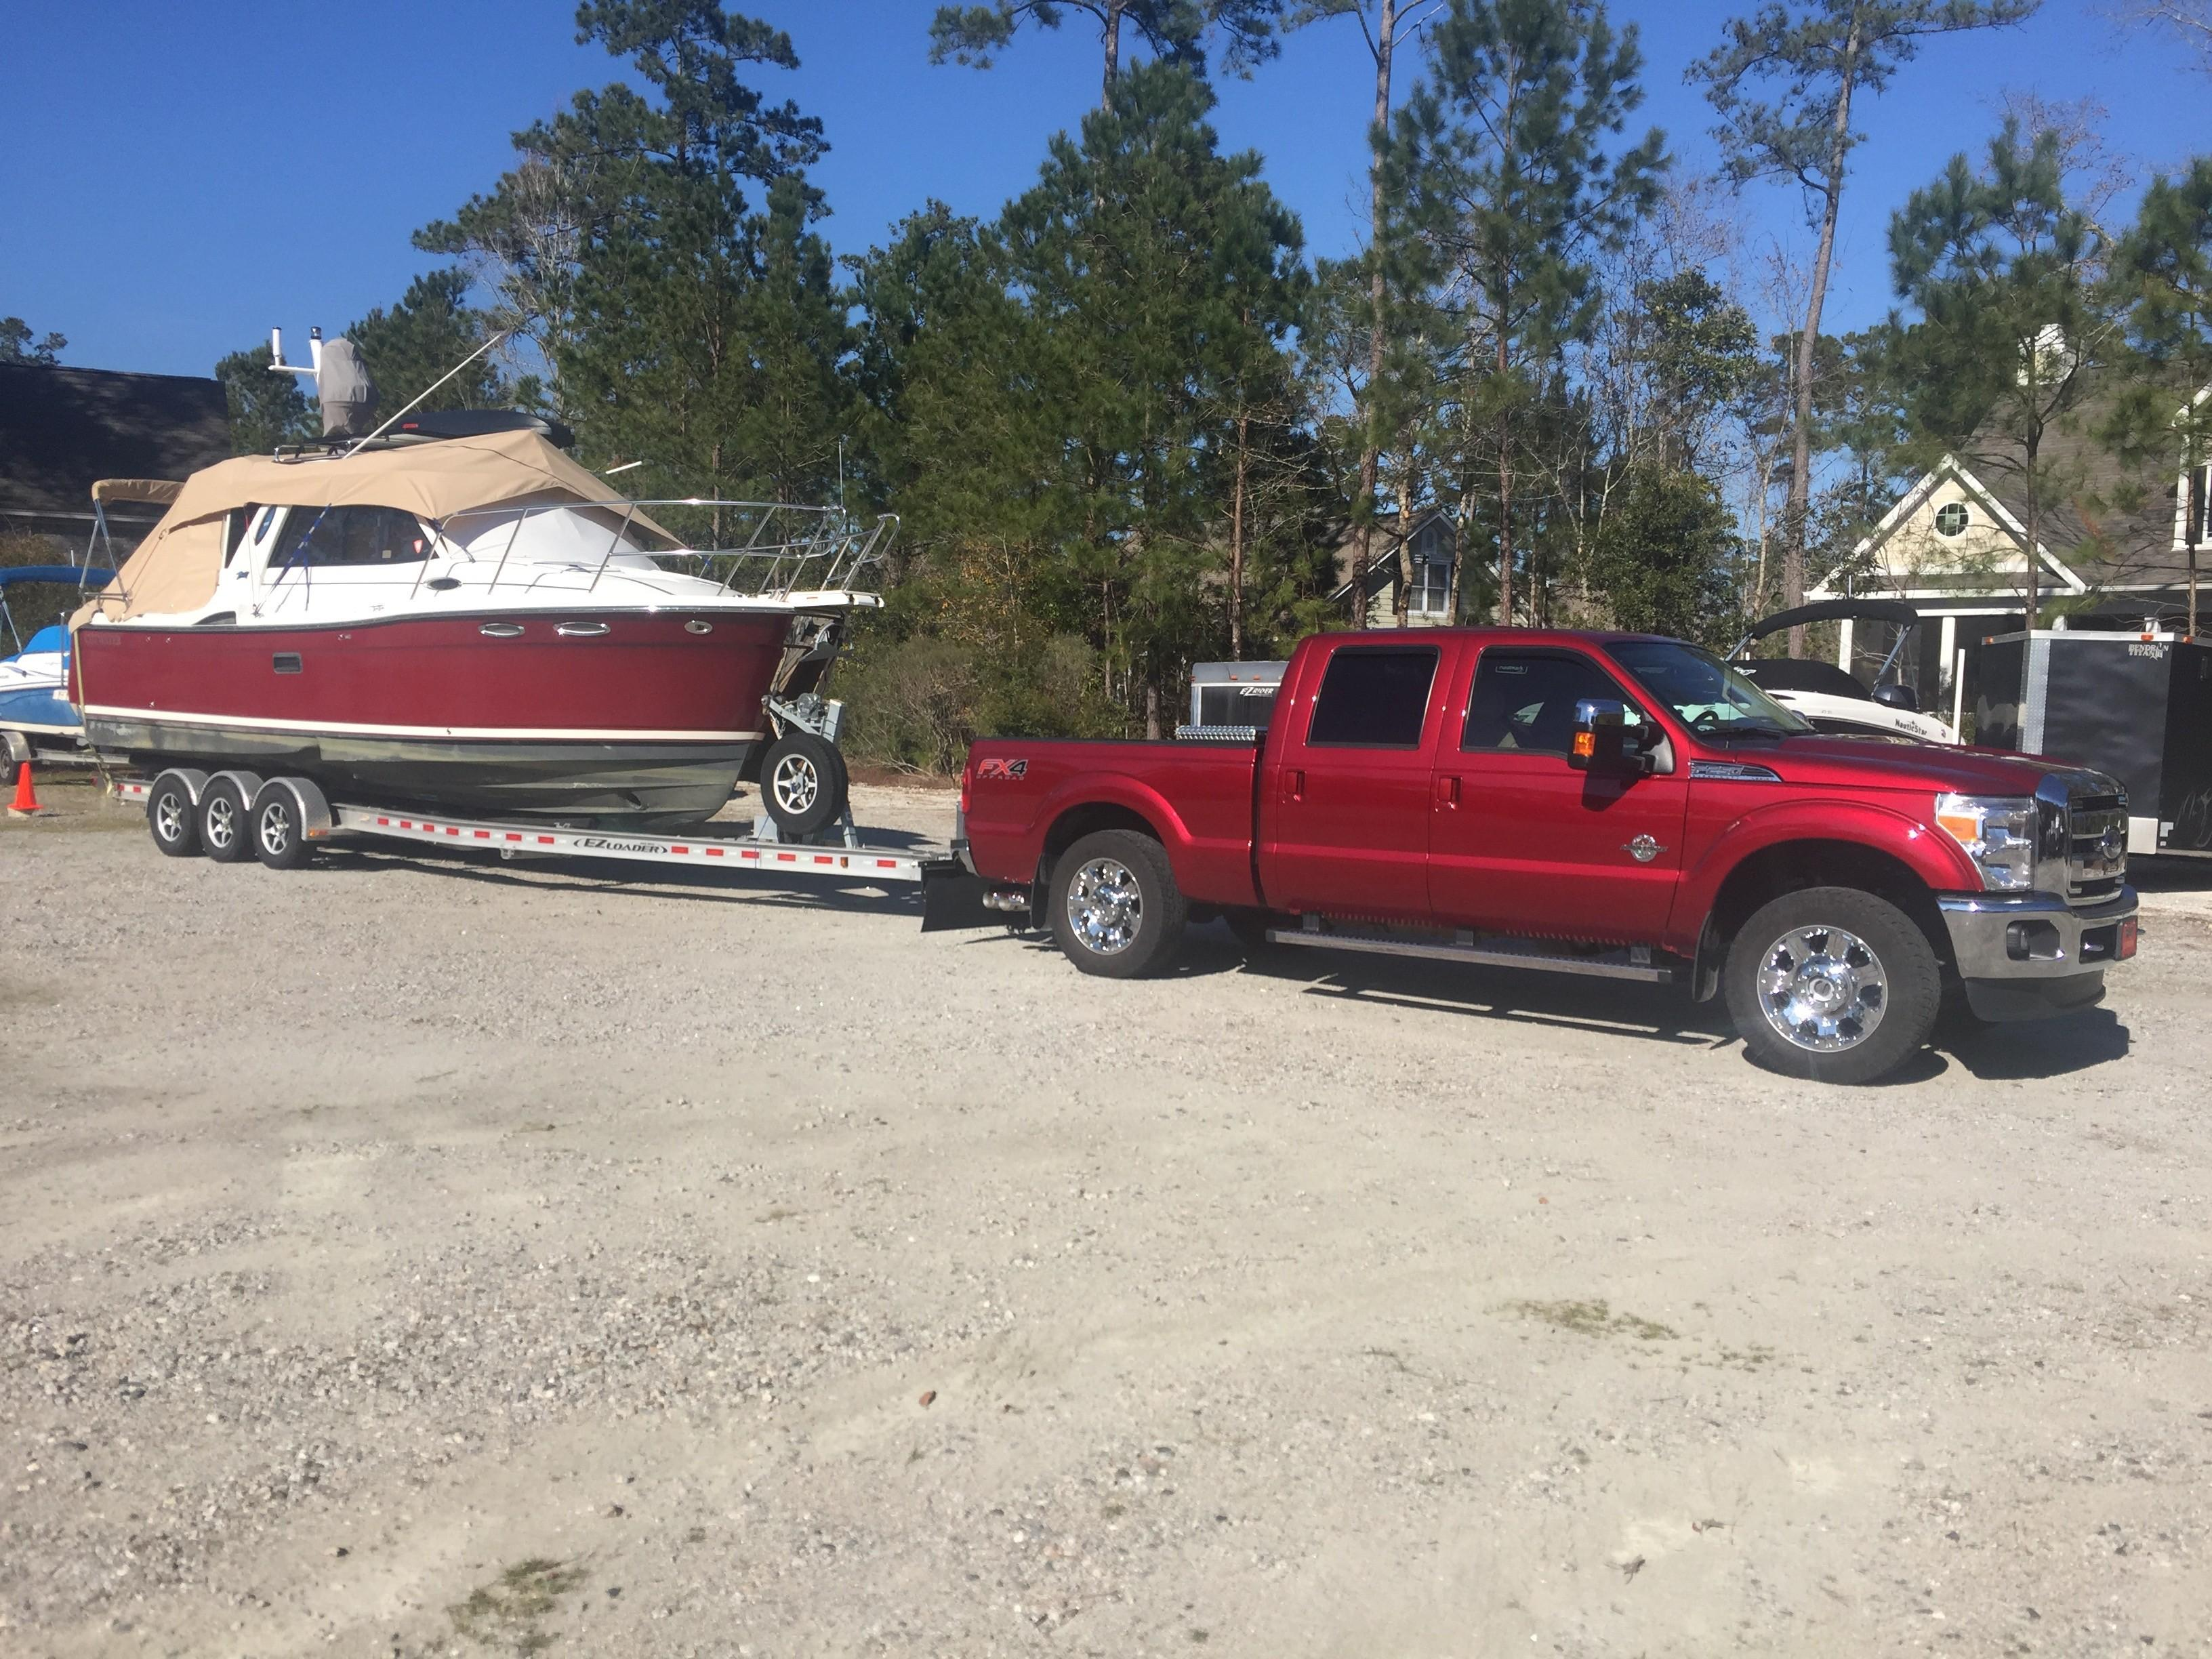 Cutwater C-28 - On Trailer with sun covers in place